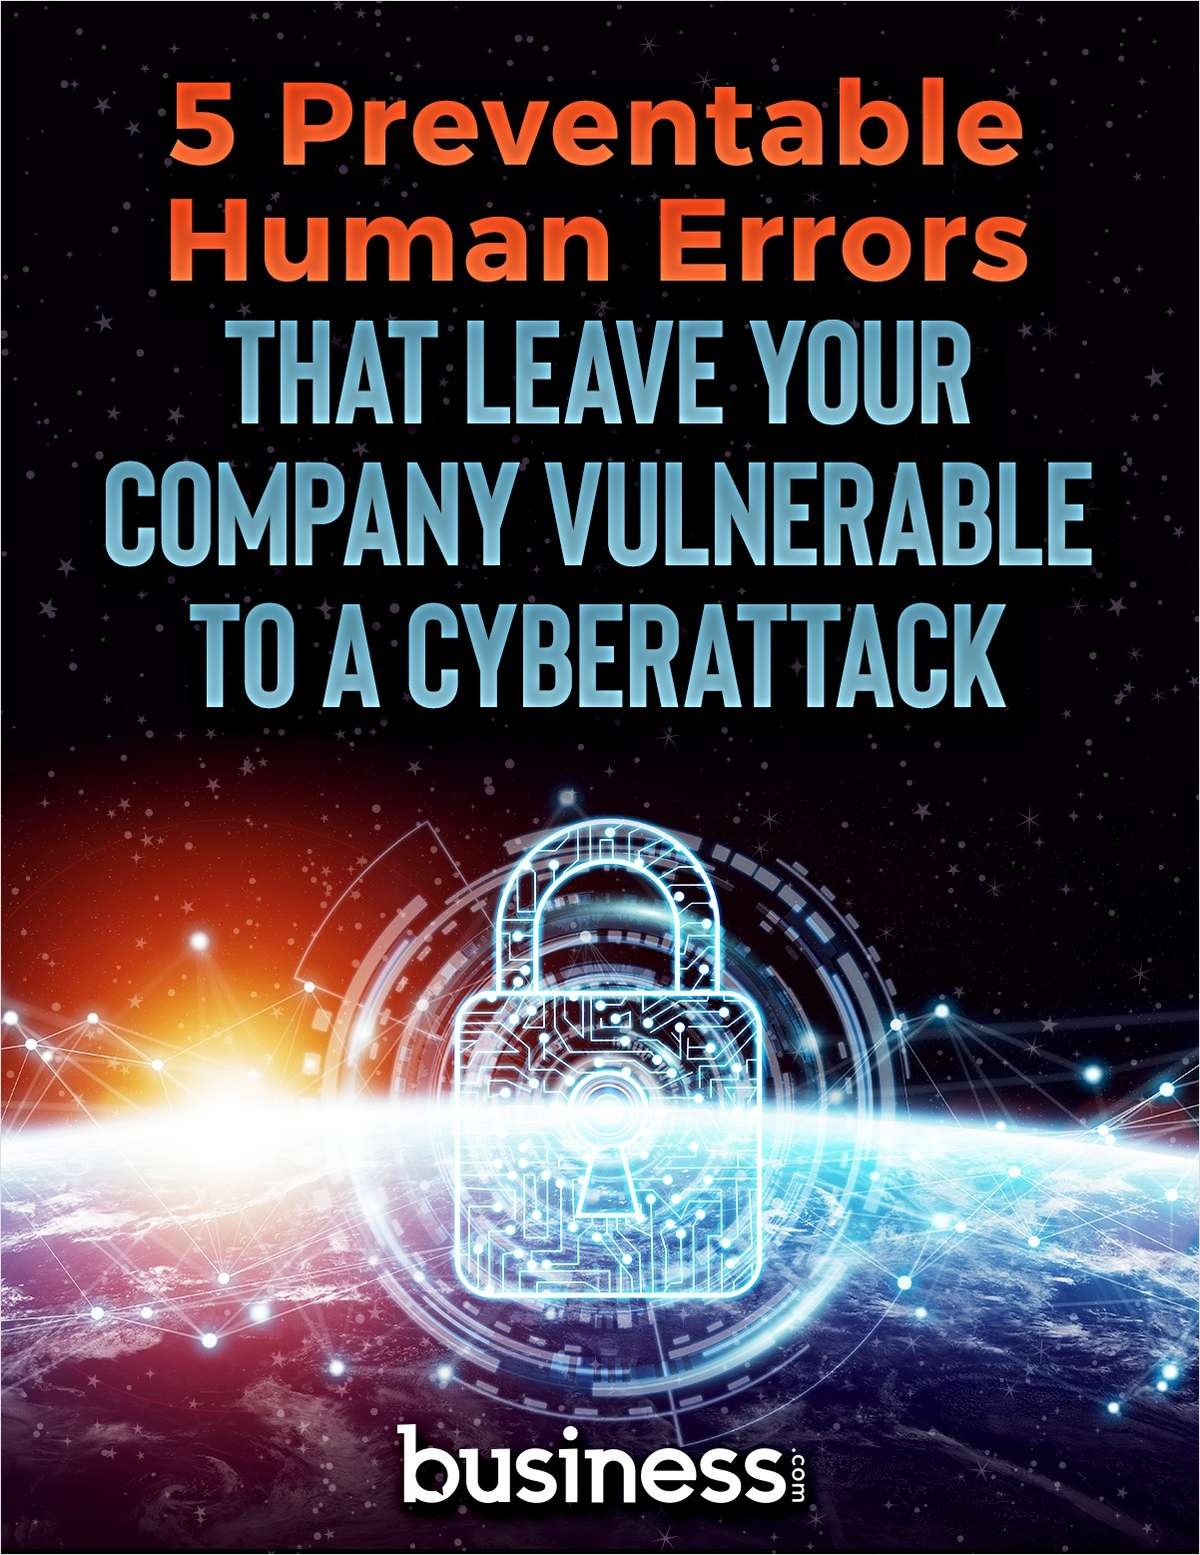 5 Preventable Human Errors that Leave Your Company Vulnerable to a Cyberattack